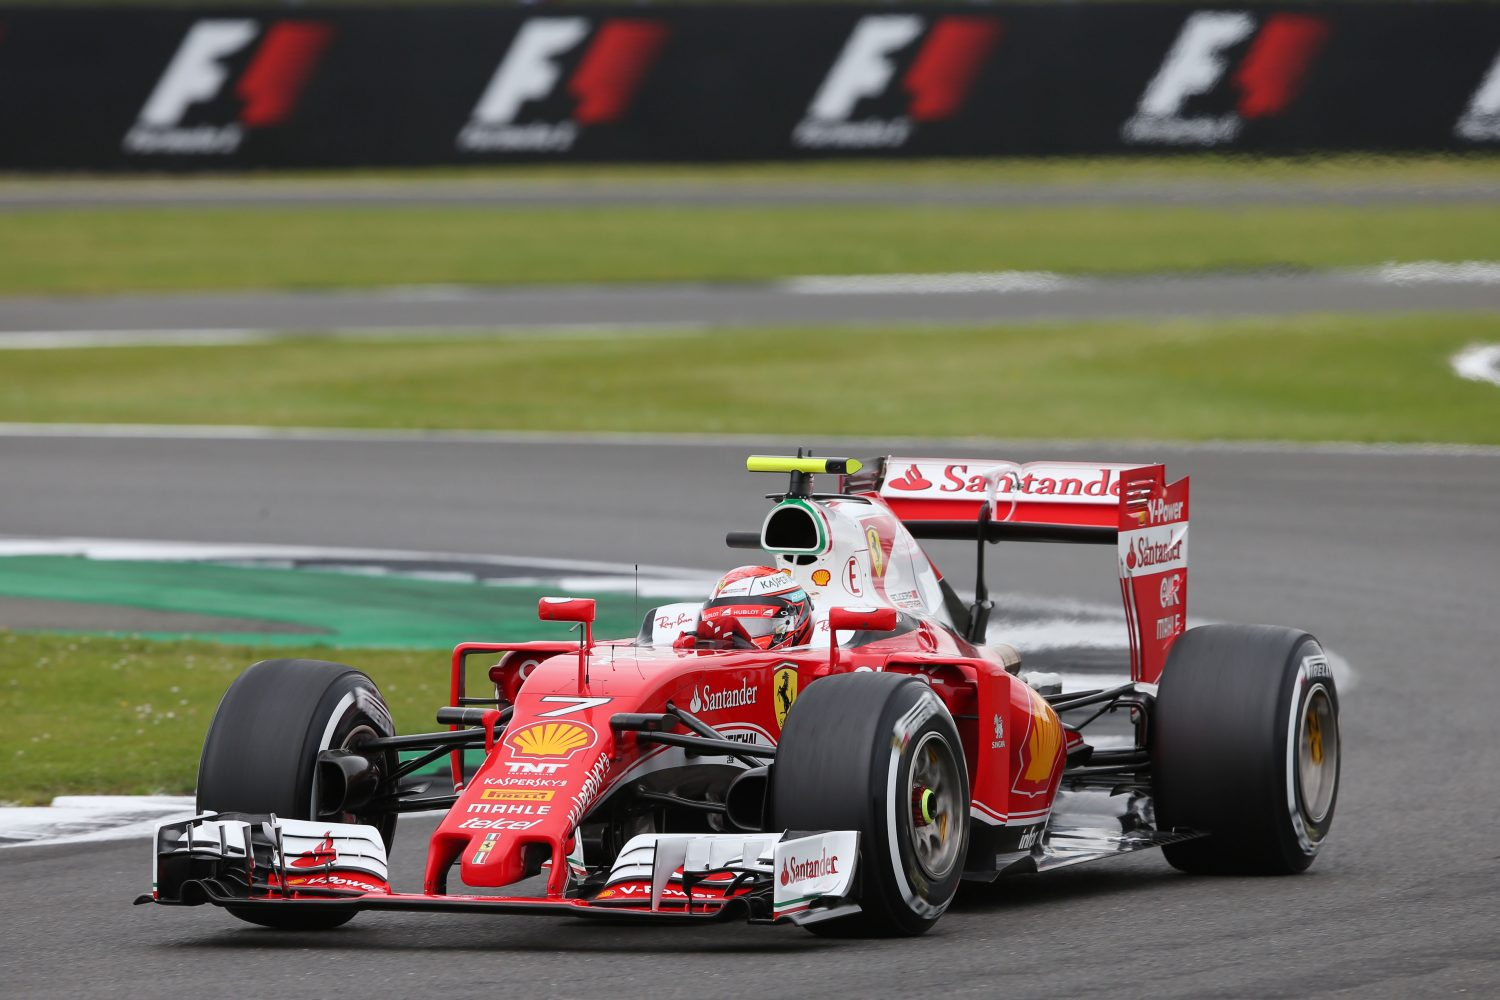 wallpapers british grand prix of 2016 marcos formula 1 page